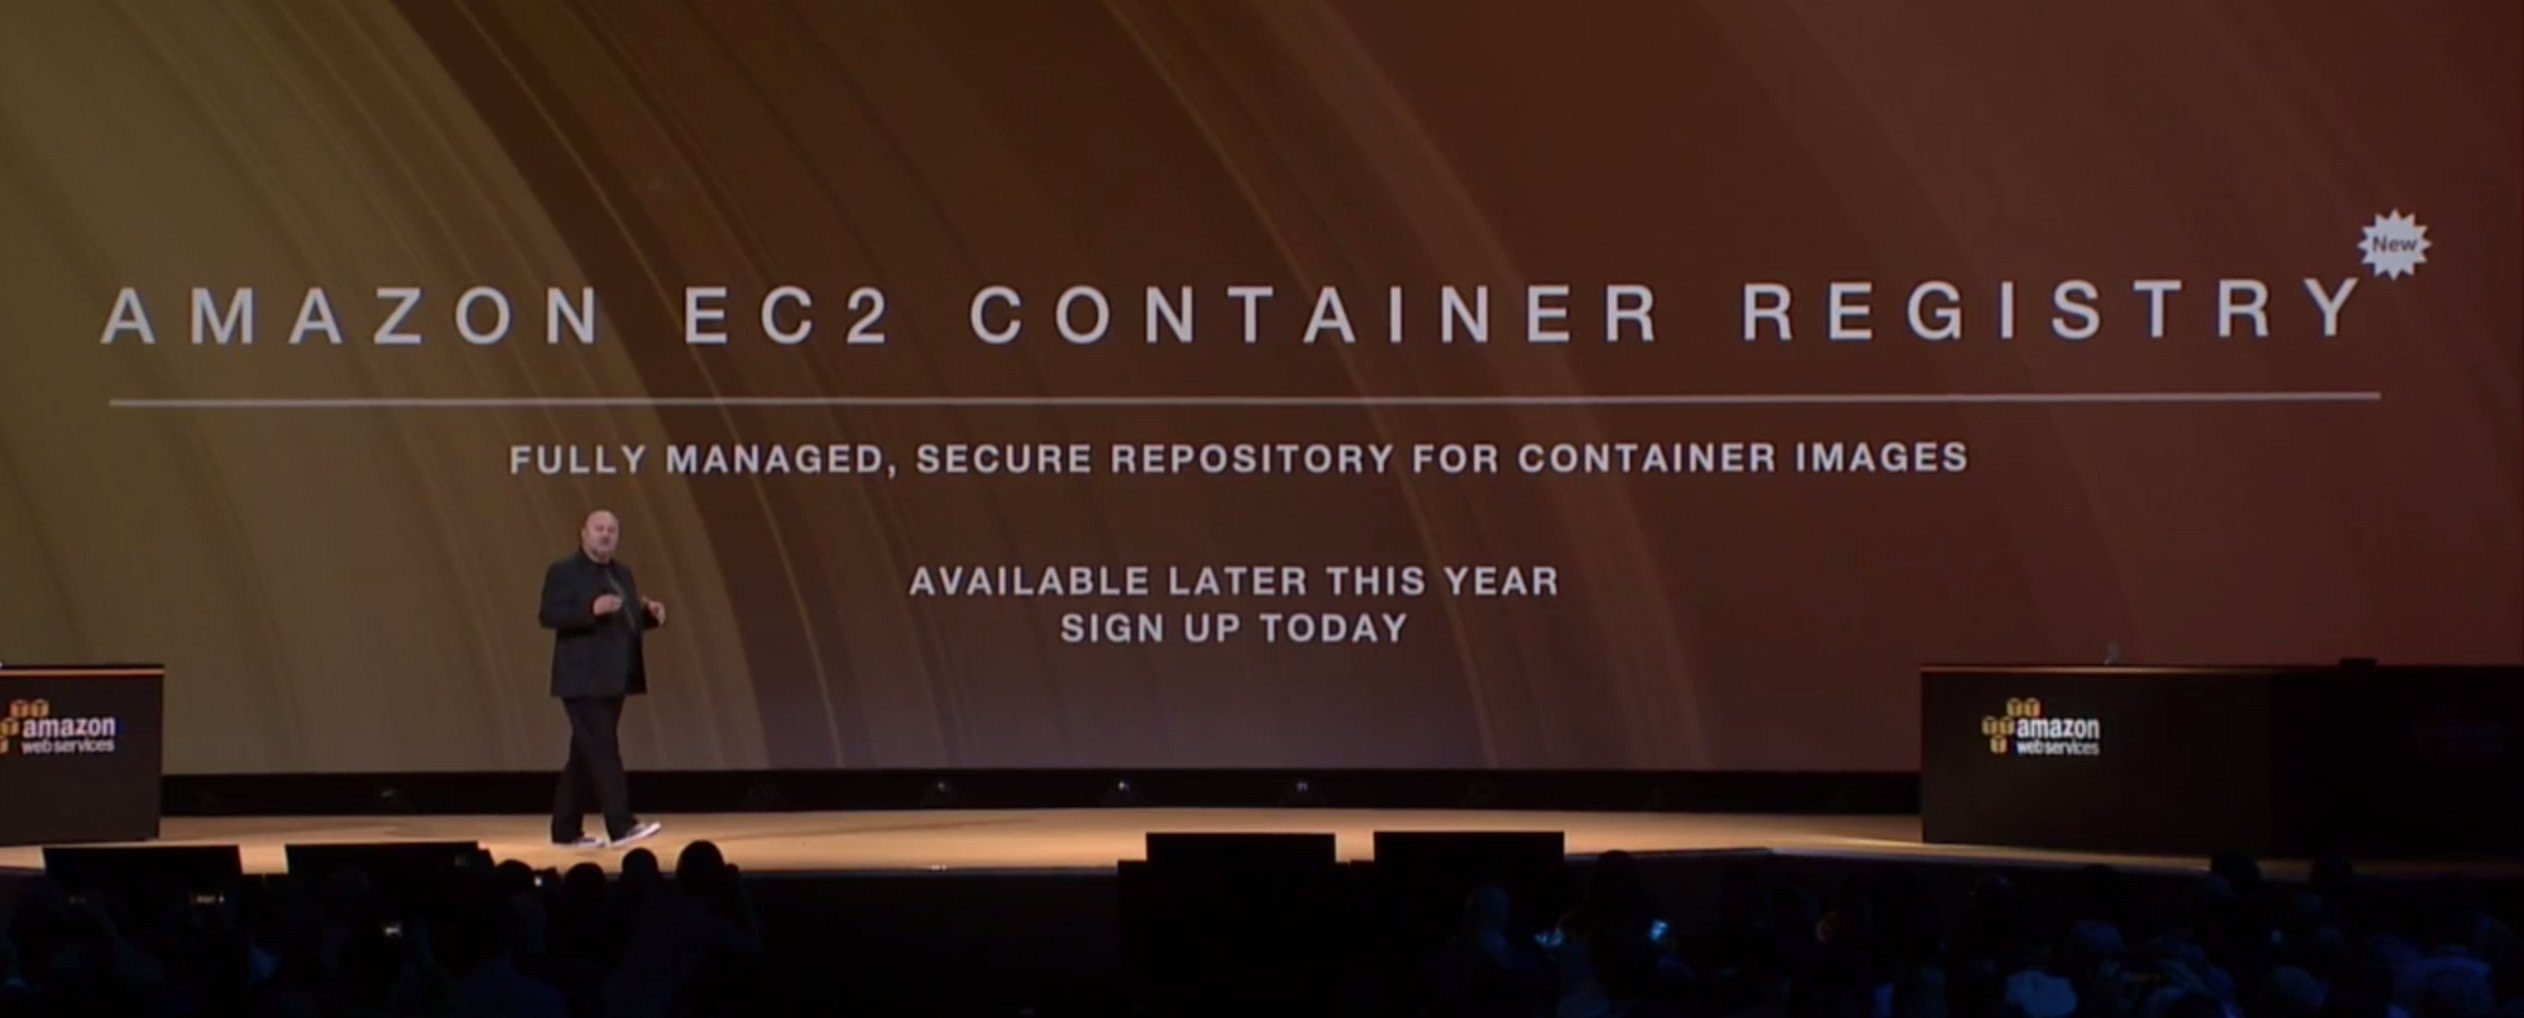 Amazon chief technology officer Werner Vogels announces the EC2 Container Registry at the AWS re:Invent conference in Las Vegas on Oct. 8.